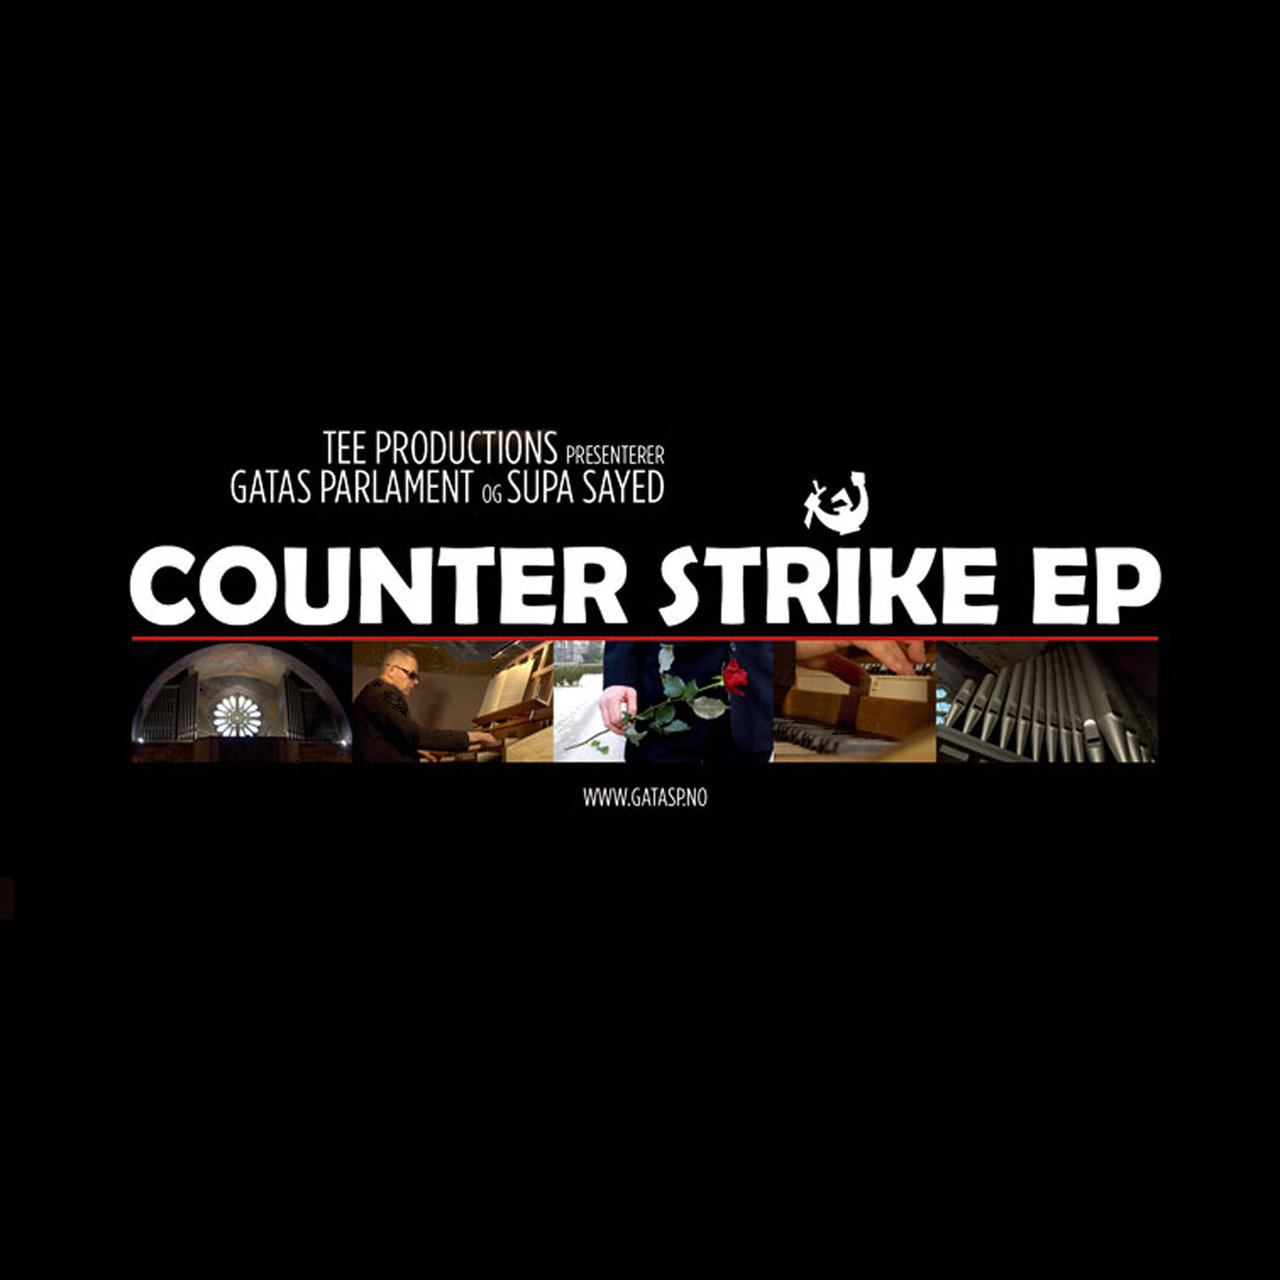 Counter Strike - EP